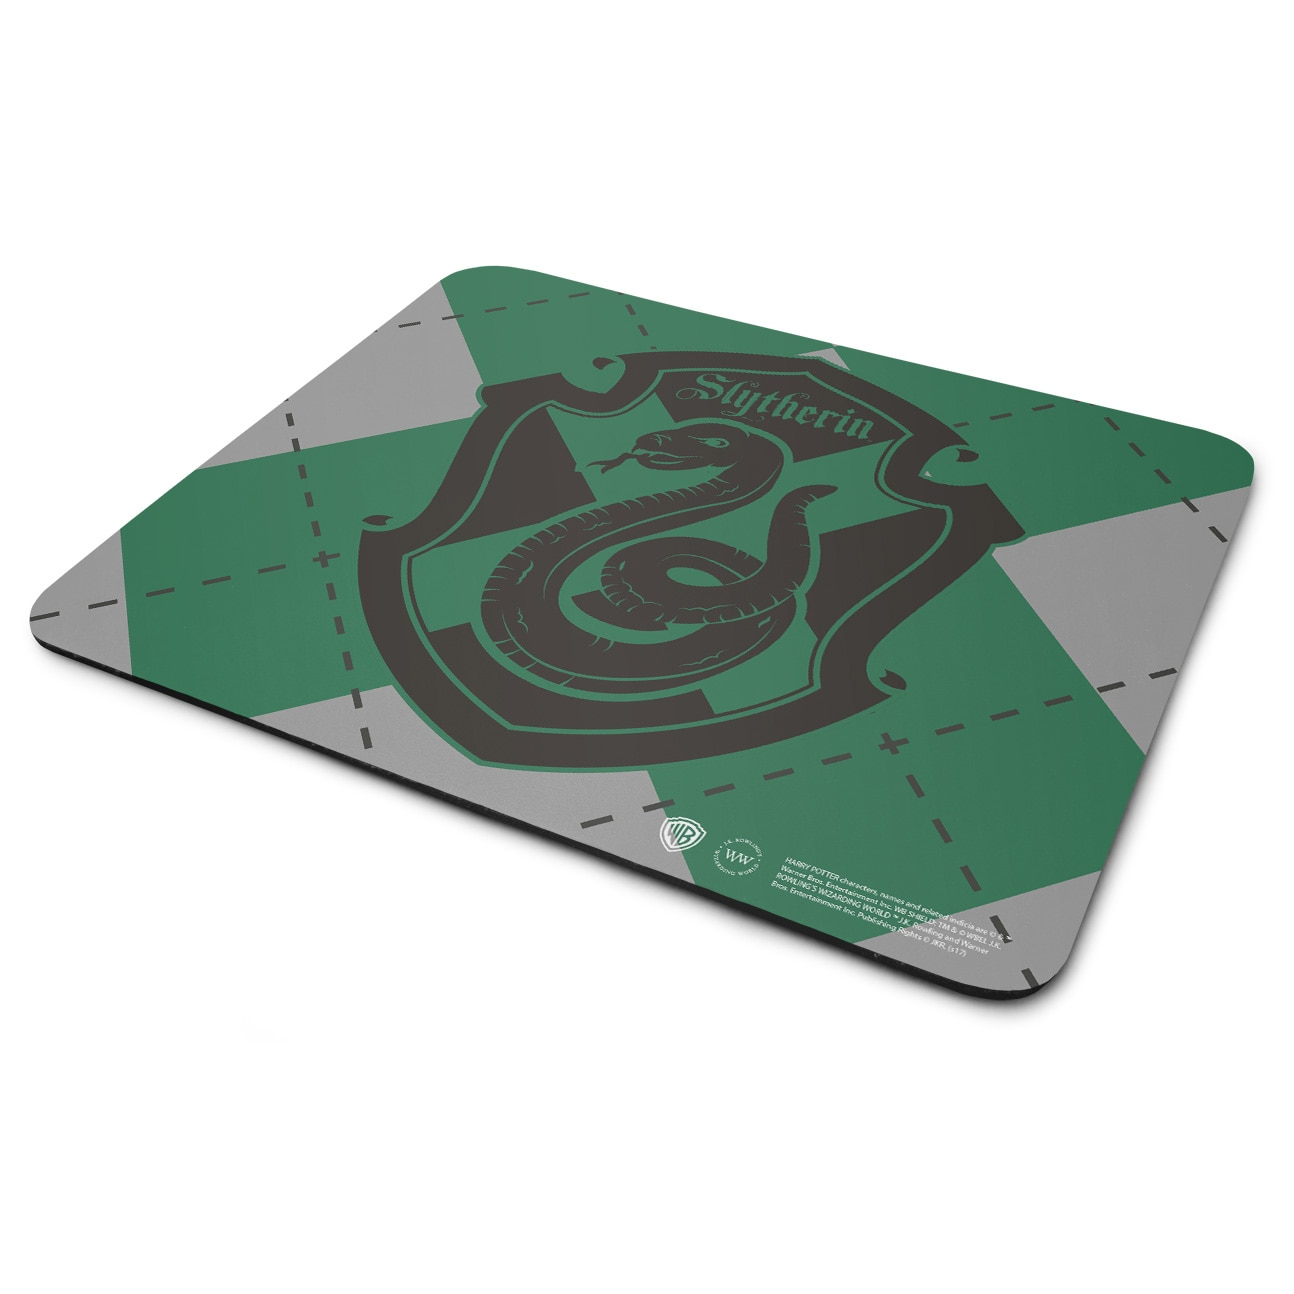 Slytherin Mouse Pad 3-Pack